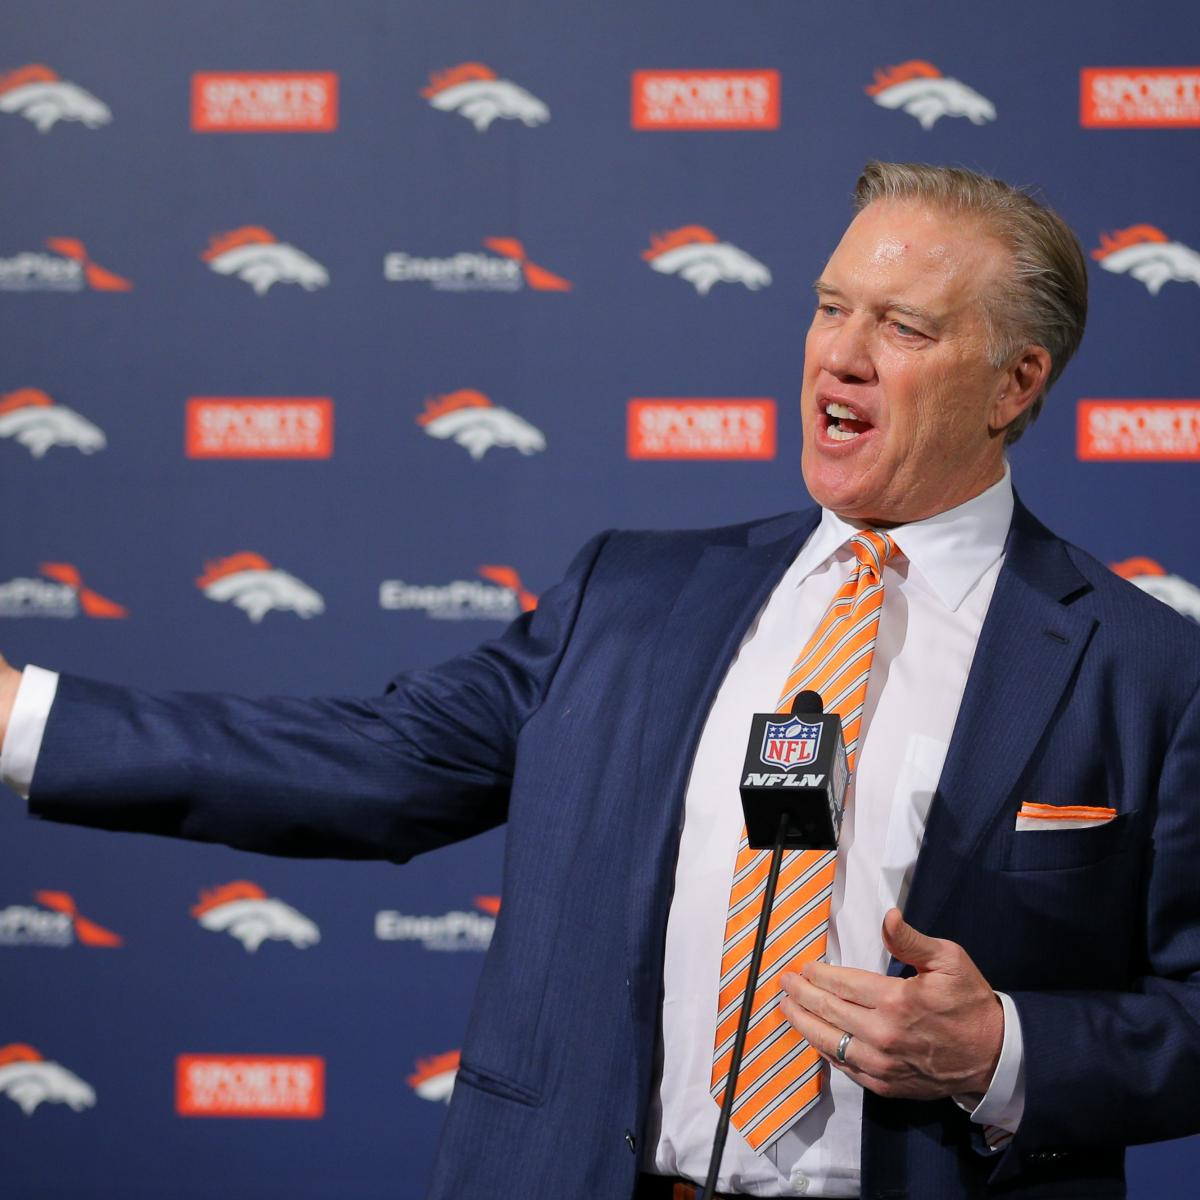 Denver News Outlets: Denver Broncos 2015 Draft: Aggregating Report Card Grades